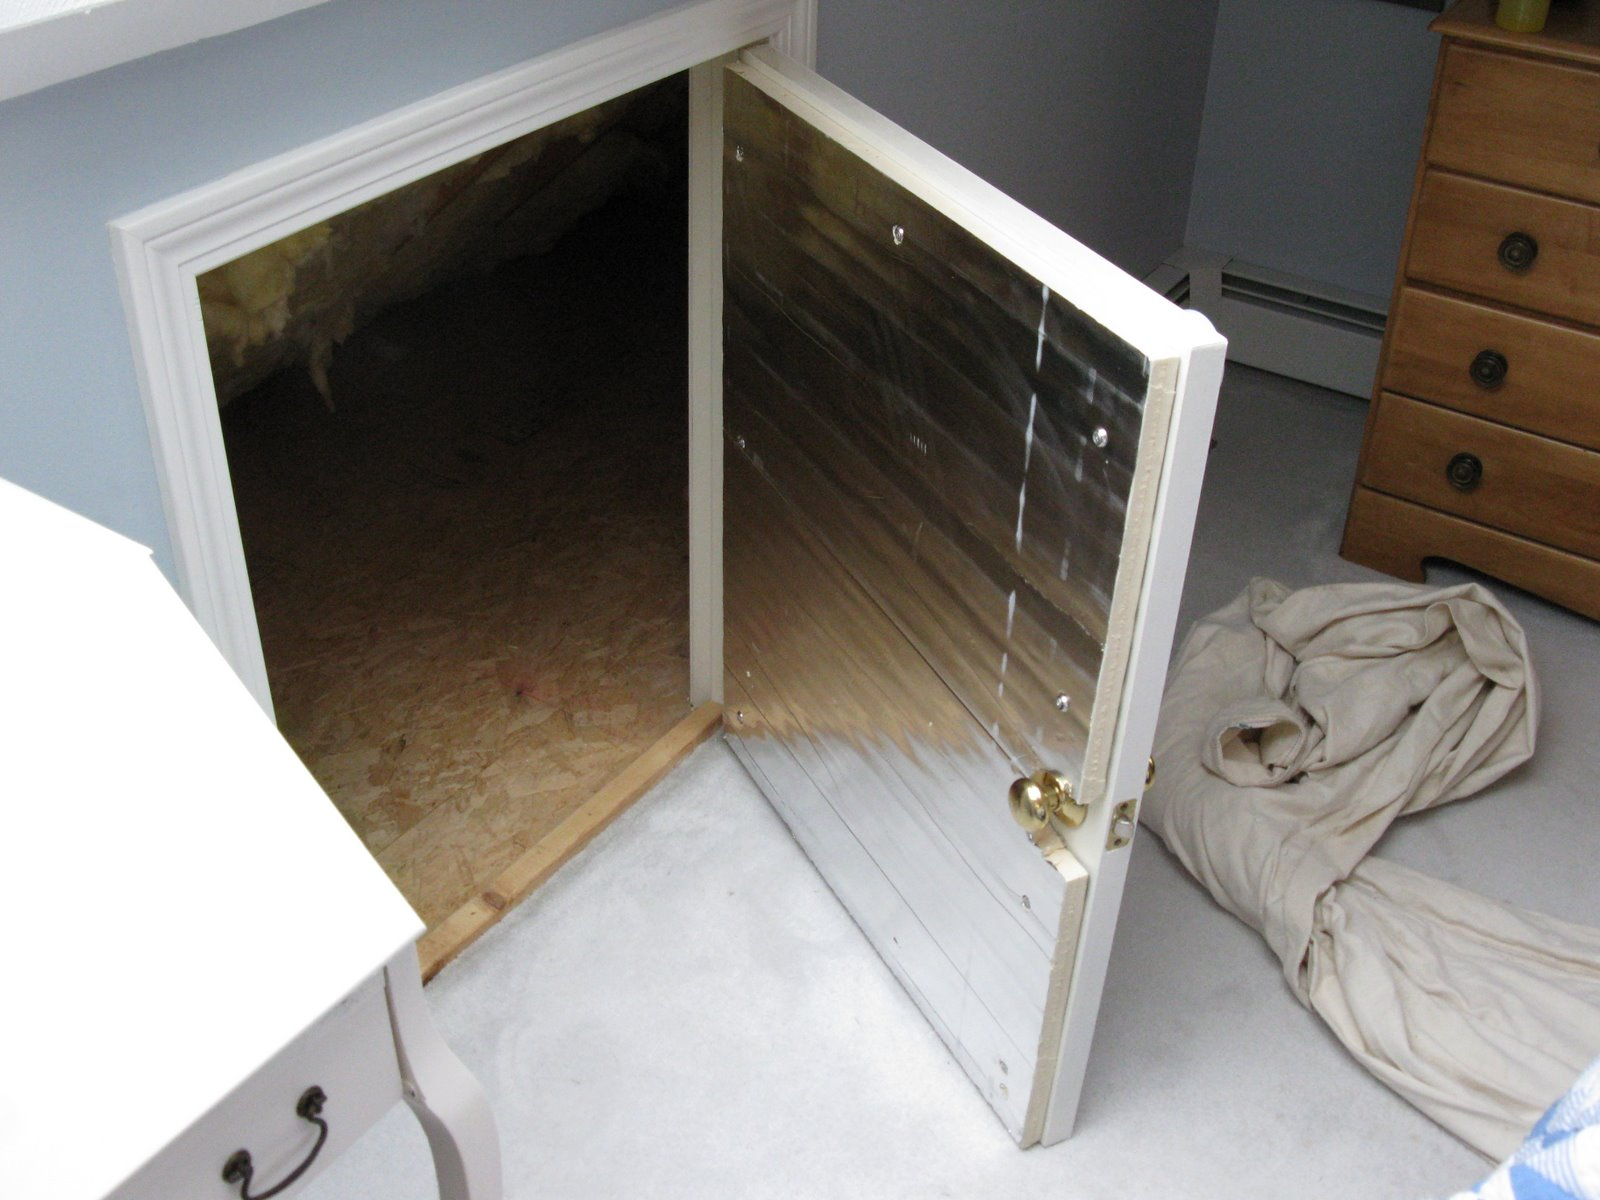 How to insulate a crawlspace door a concord carpenter for Insulated entry door